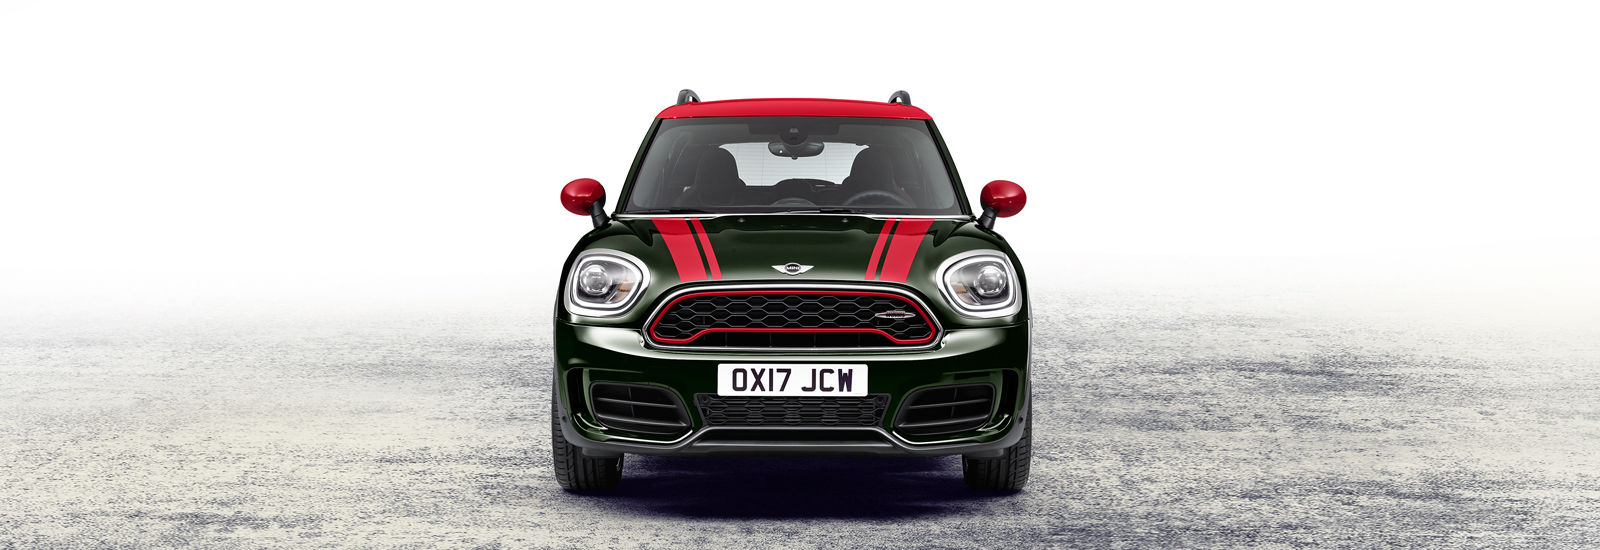 new mini car release dateMini Countryman JCW price specs and release date  carwow